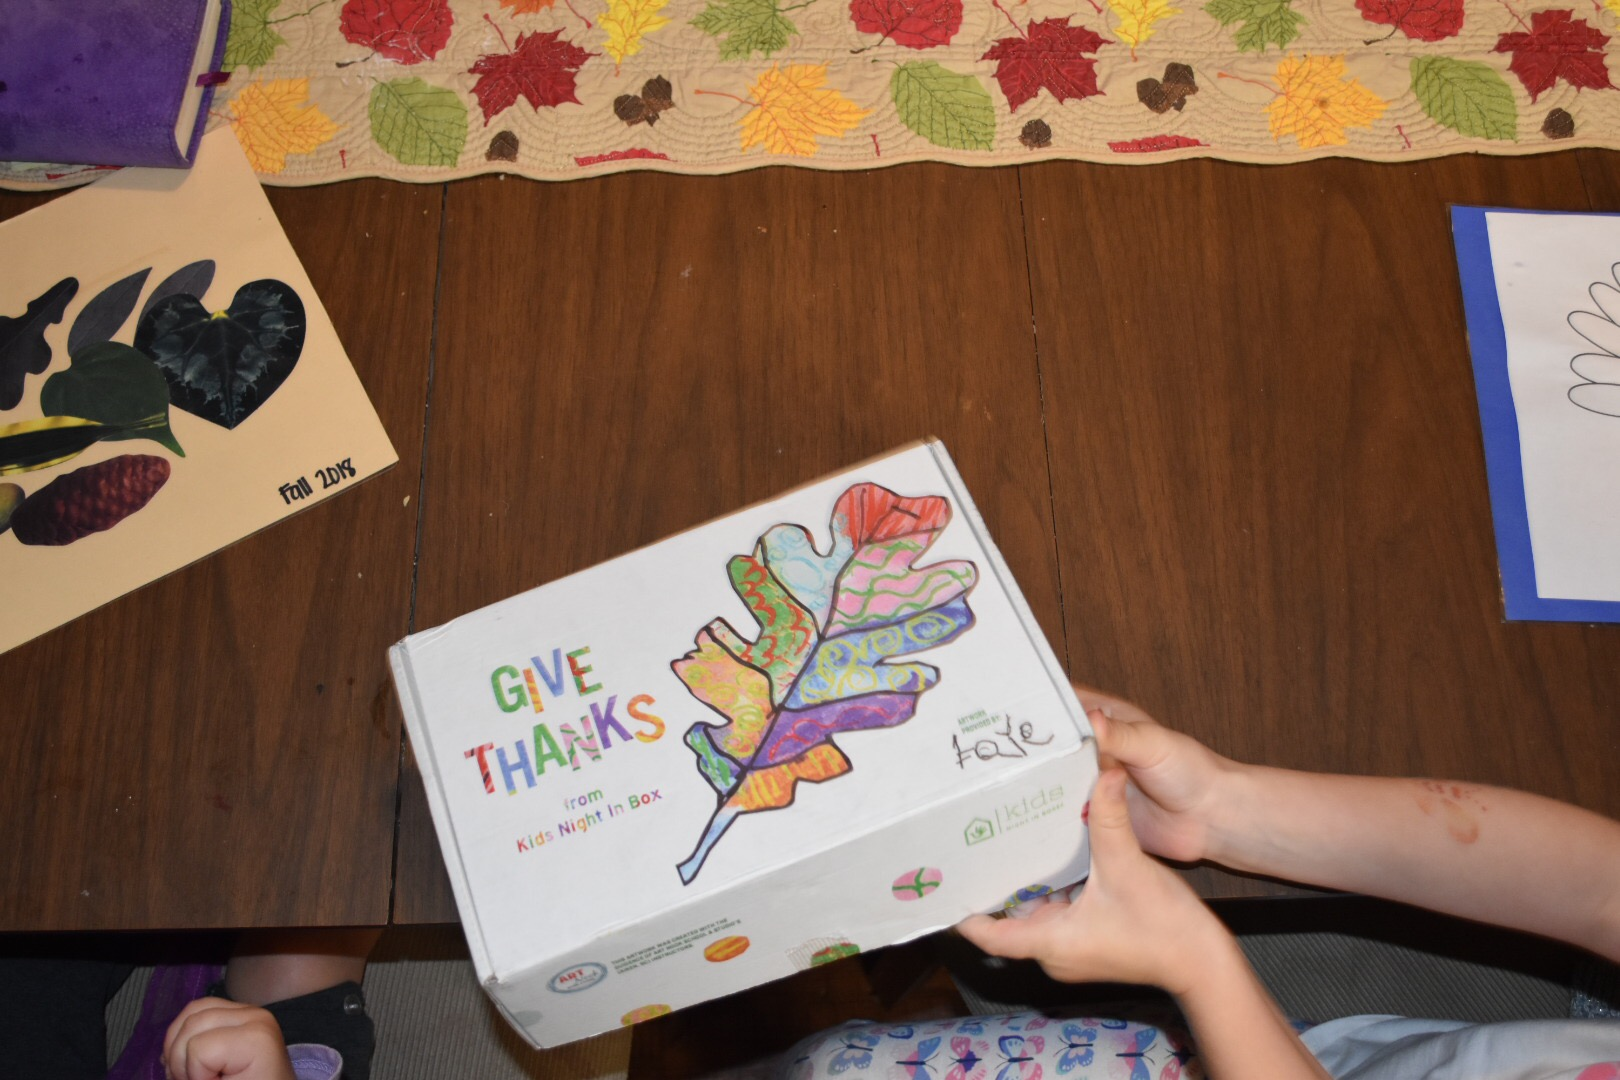 Kids Night In Box – Give Thanks